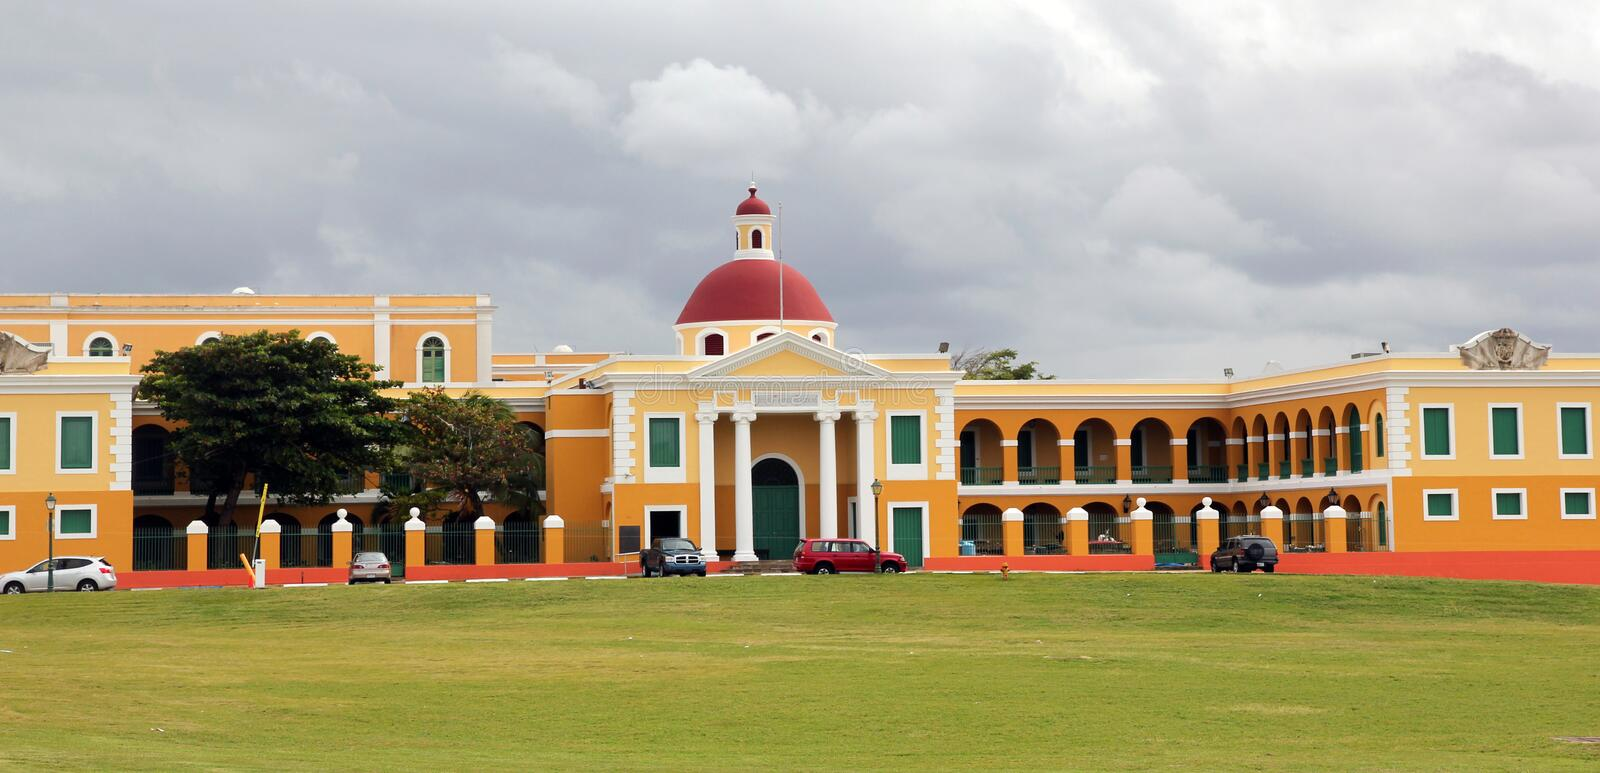 School of Arts in Puerto Rico. Colorful university building with dramatic gray sky in Old San Juan in Puerto Rico stock image